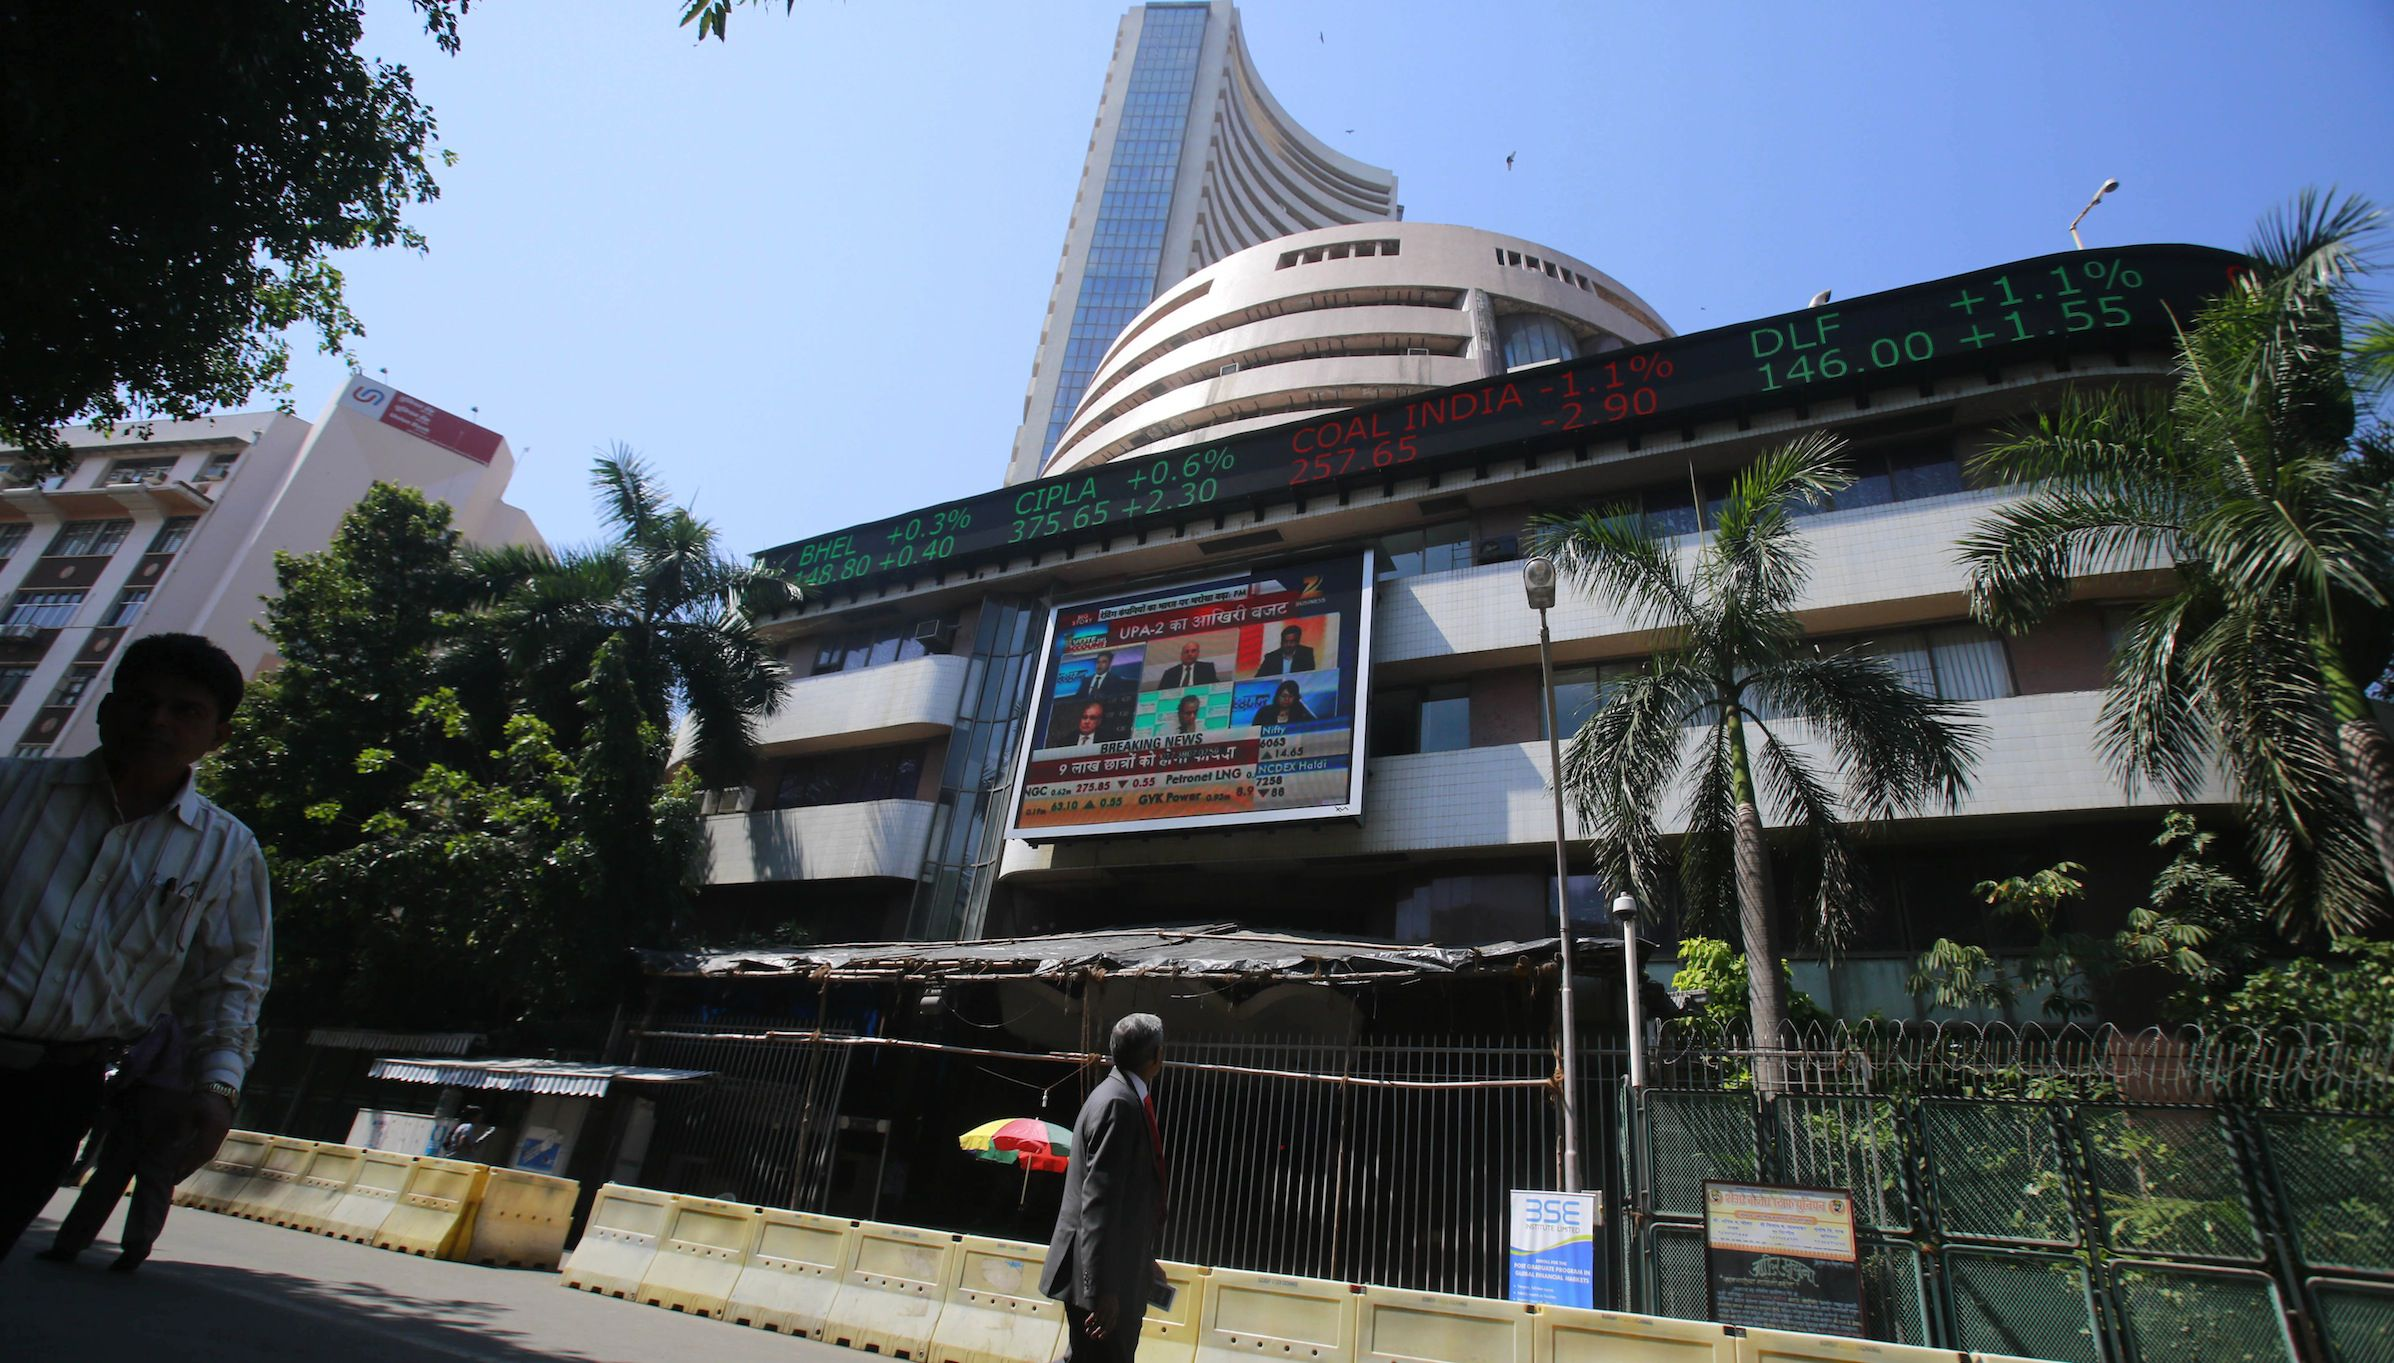 A man watches sensex on a display screen on the facade of the the Bombay Stock Exchange (BSE) building in Mumbai , India, Monday Feb. 17, 2014. India's Finance Minister P. Chidambaram has unveiled a conservative budget for the government's remaining time in office through May in parliament. (AP Photo/Rafiq Maqbool)